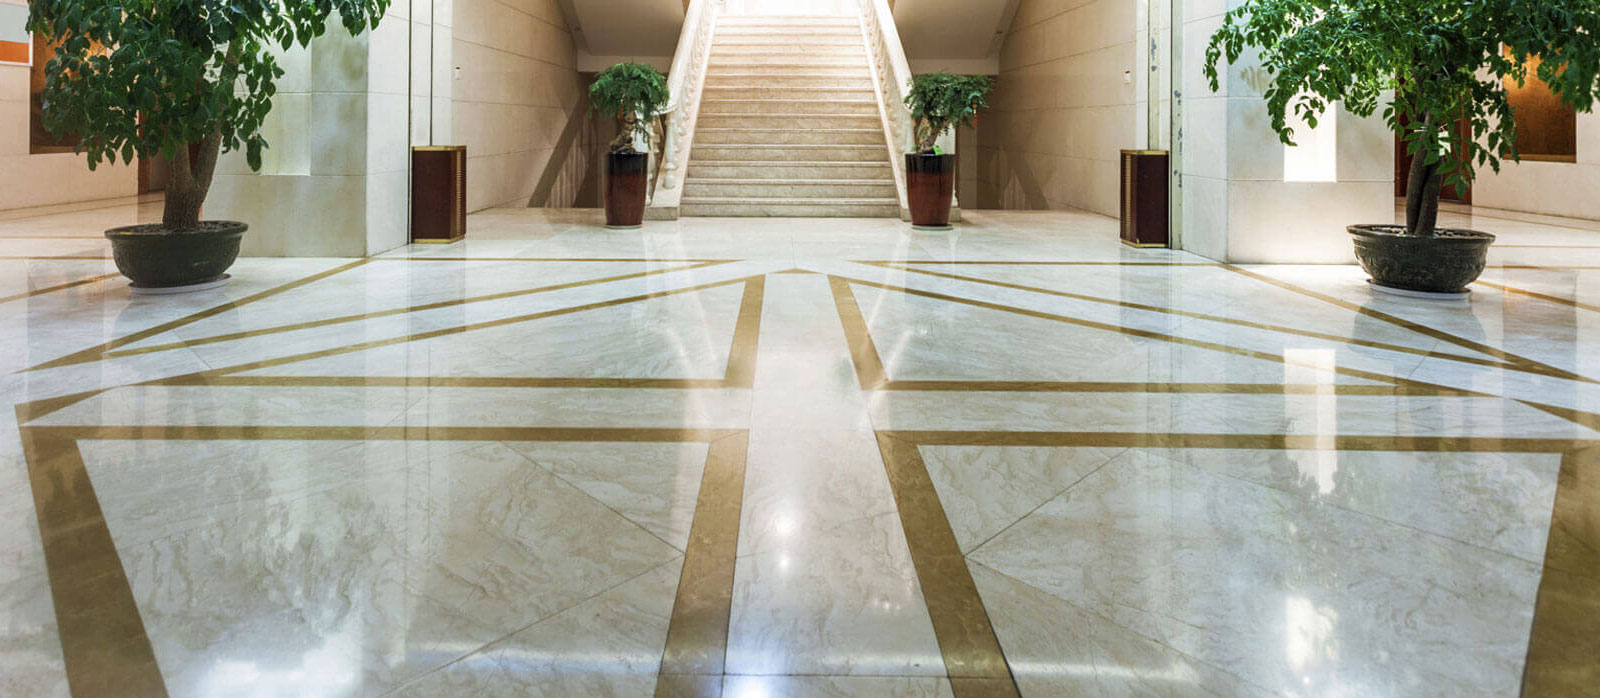 Some Facts About Katni Marble